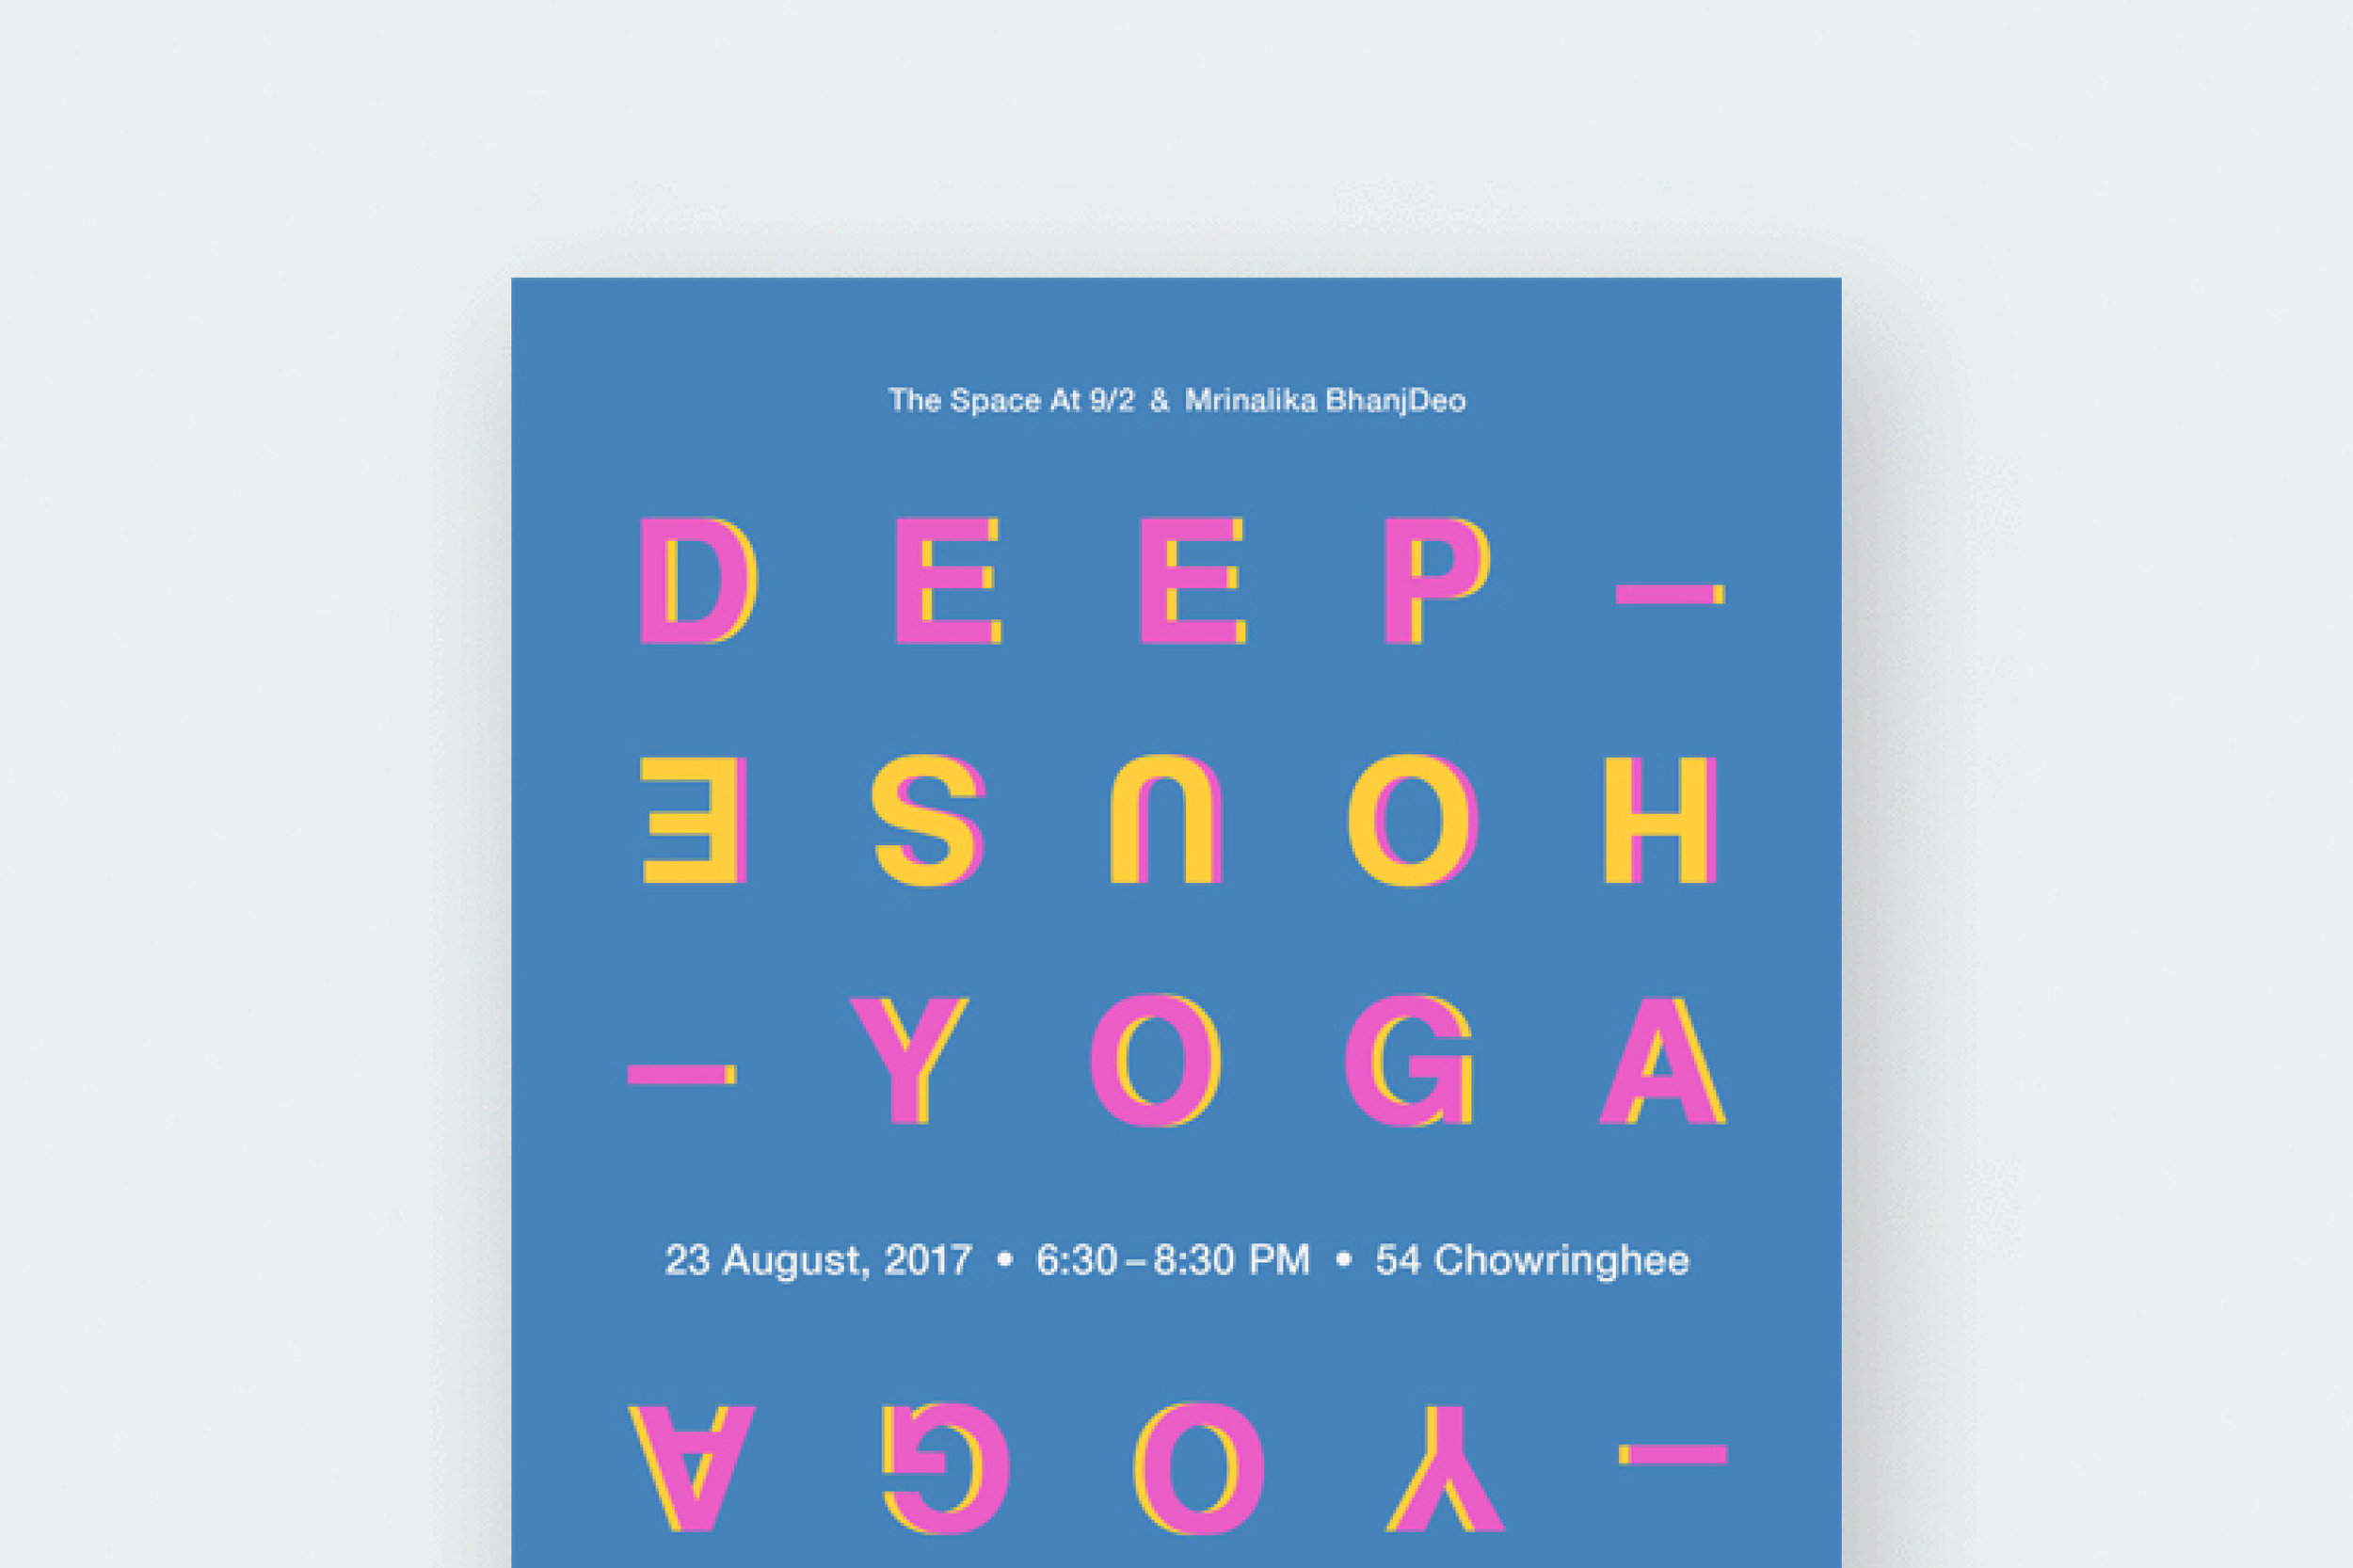 Deep House Yoga  Combining music & yoga to allow you to flow through different asanas.